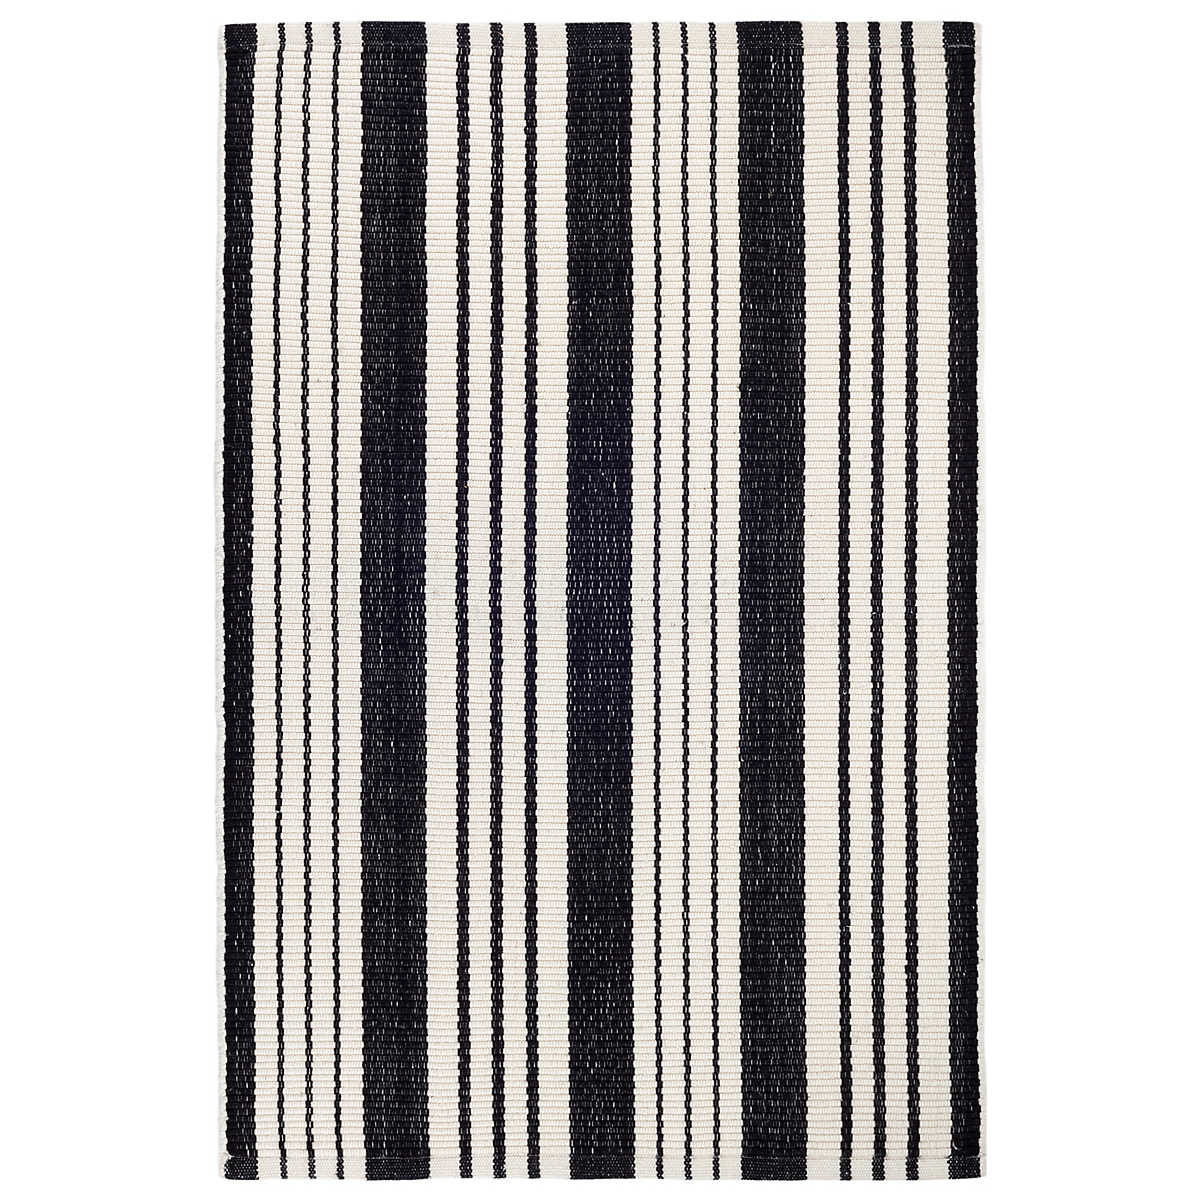 Birmingham Black Woven Cotton Rug Dash Amp Albert